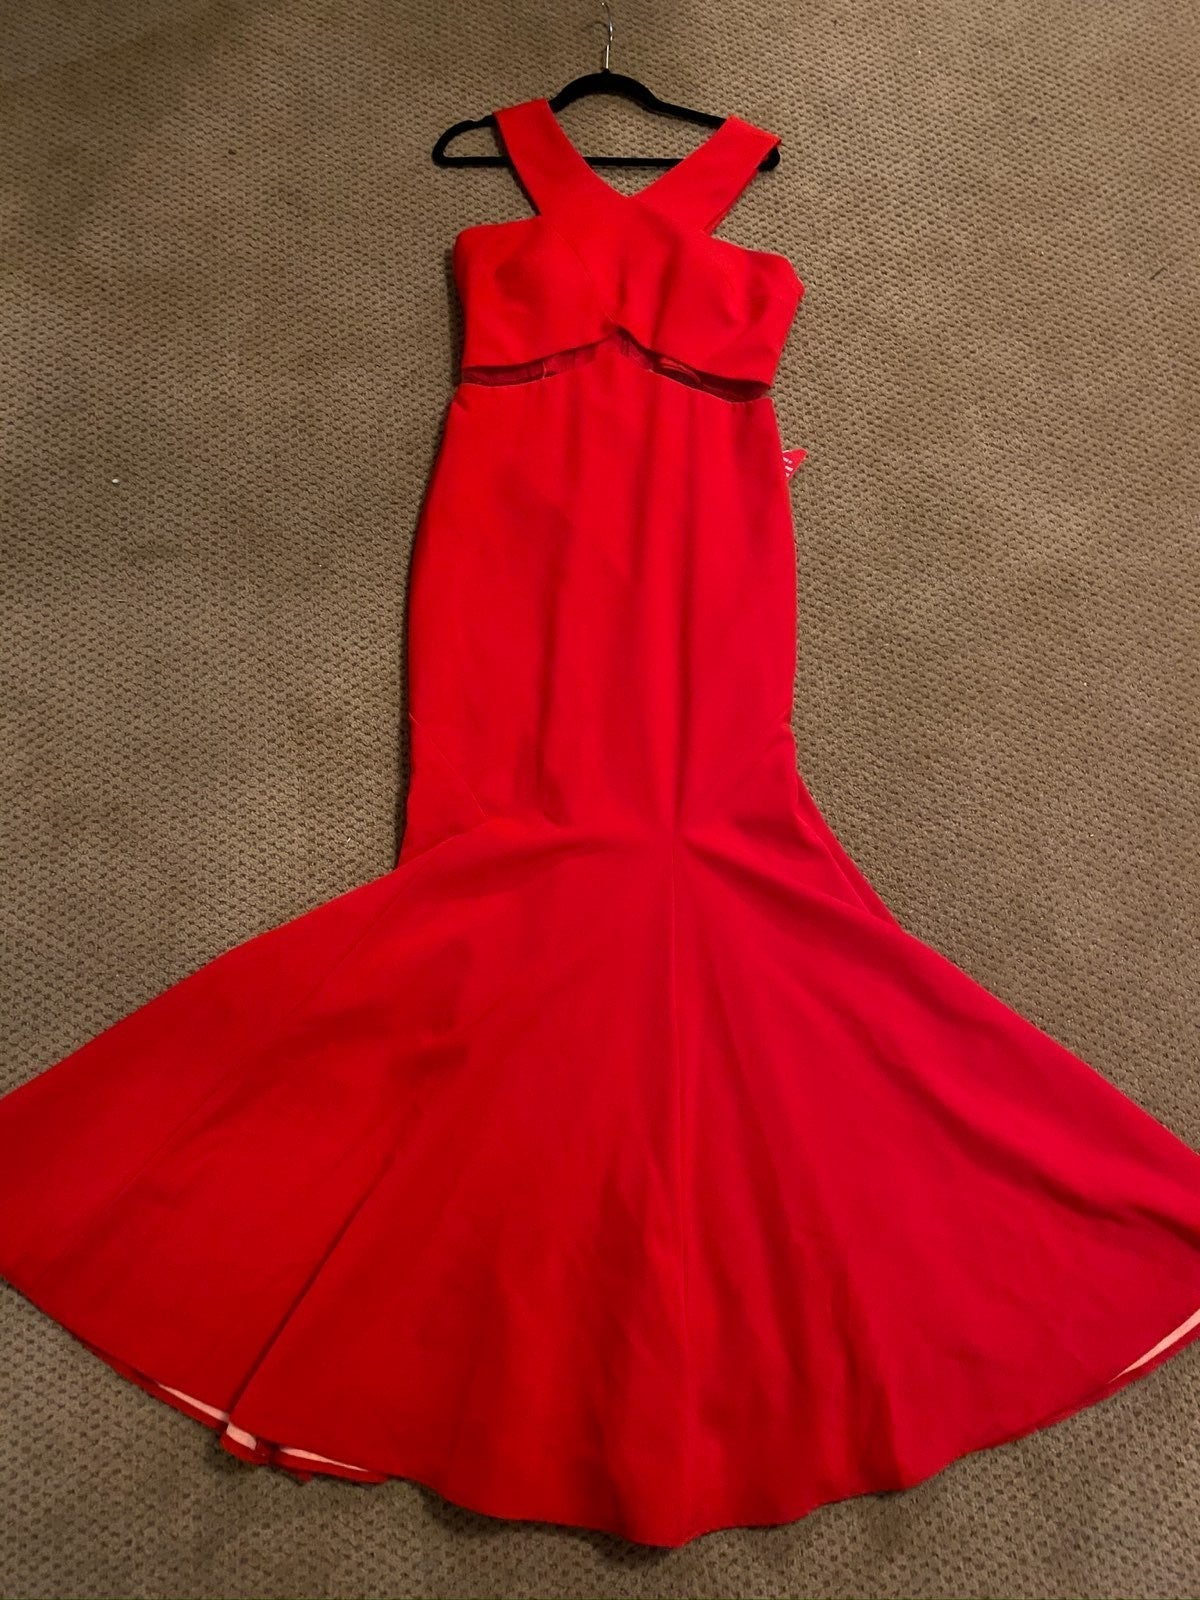 Mignon fit and flare red gown size 12